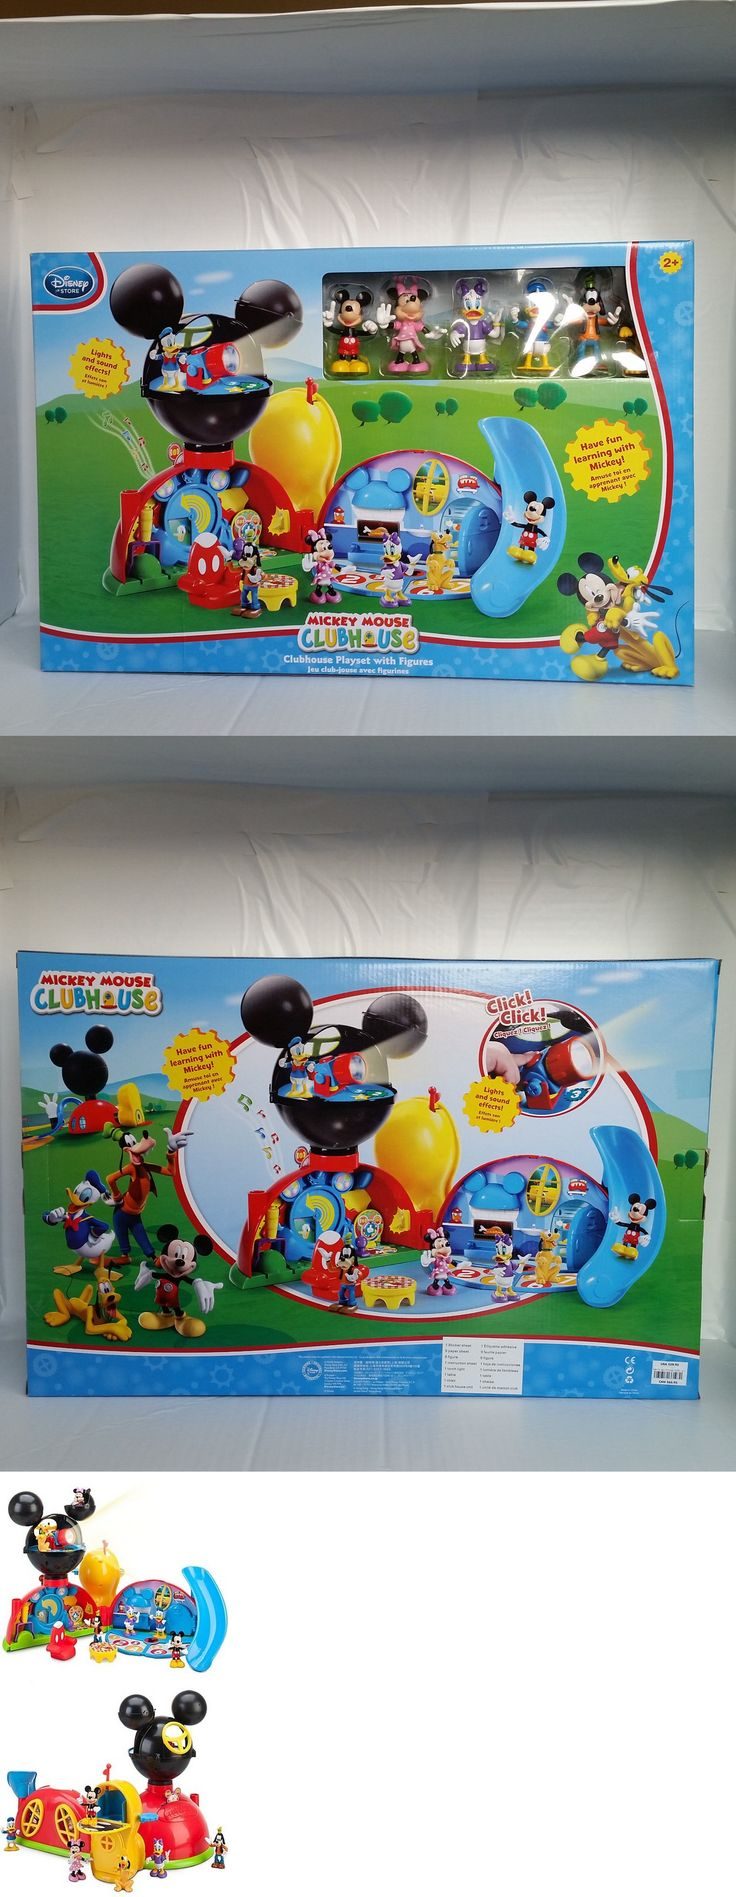 Mickey 19219: Disney Store Deluxe Mickey Mouse Clubhouse Play Set Toy 6 Figure Lights Sounds -> BUY IT NOW ONLY: $149.95 on eBay!